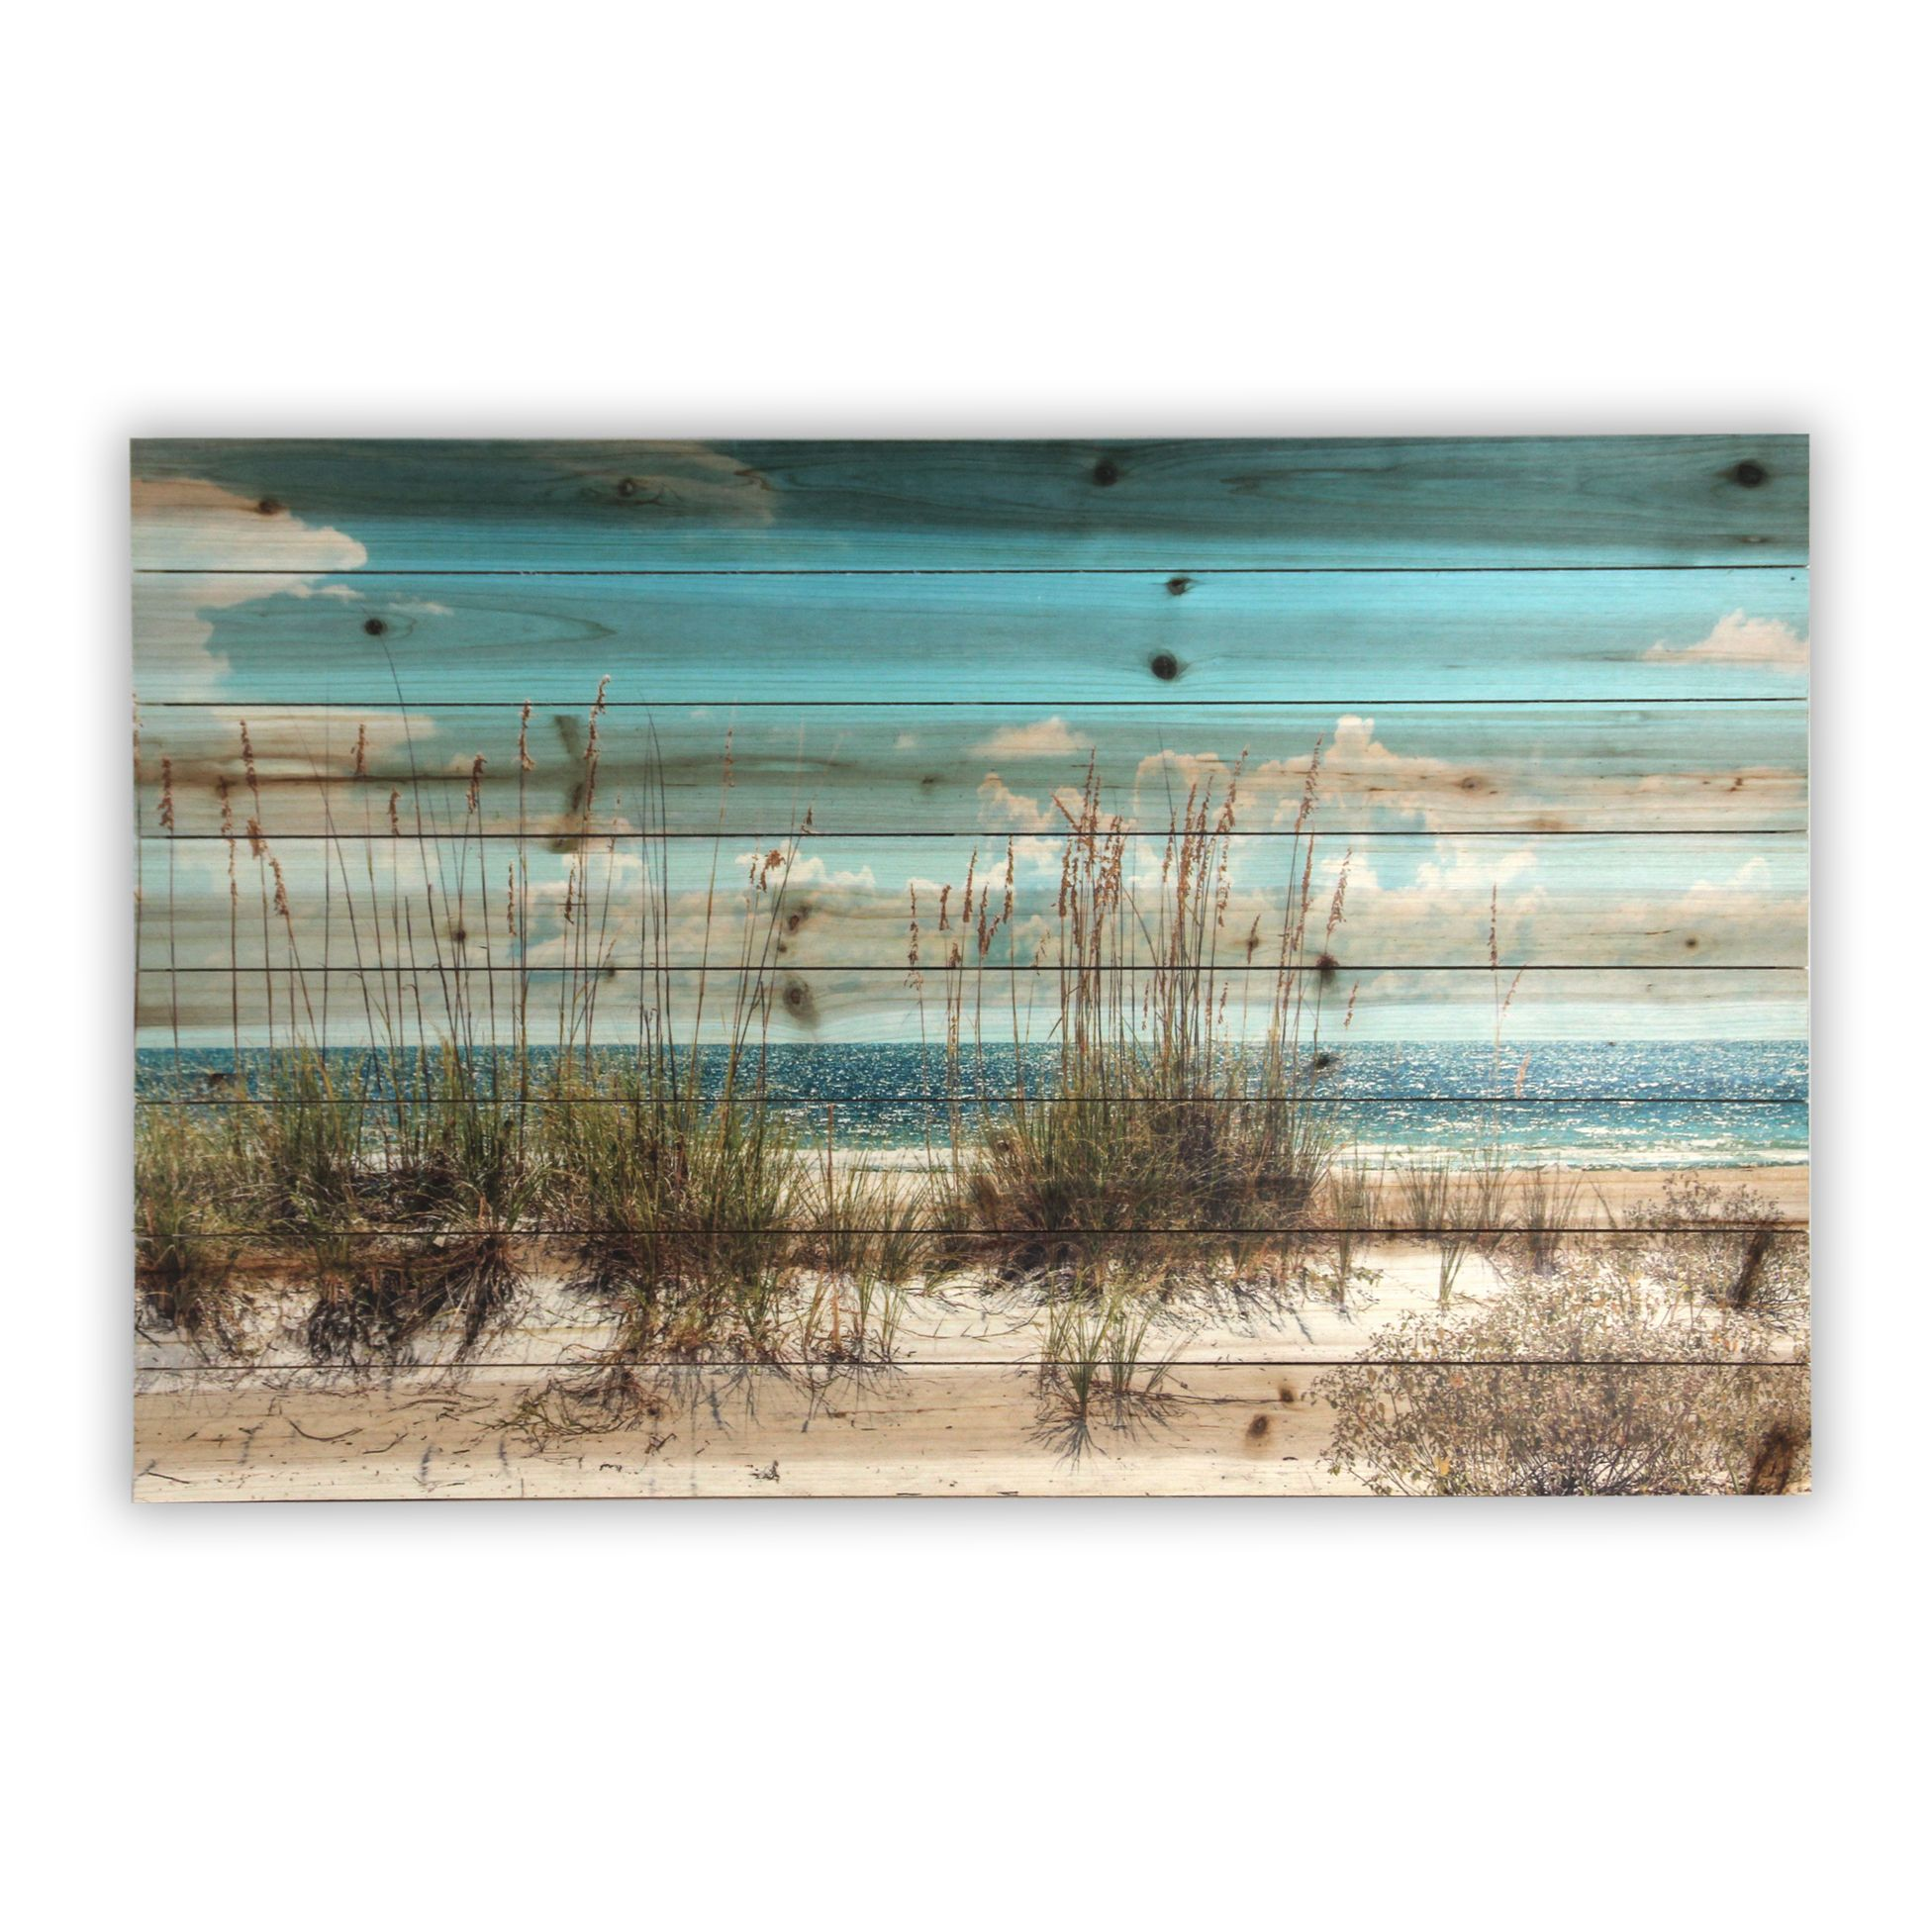 Remember the last time you were at the beach? Relive those days as you stare at your wall art that will take you back to the soft sand and breezy winds. This image will fit in your room of choice and be a true focal point to inspire the mood of the room.